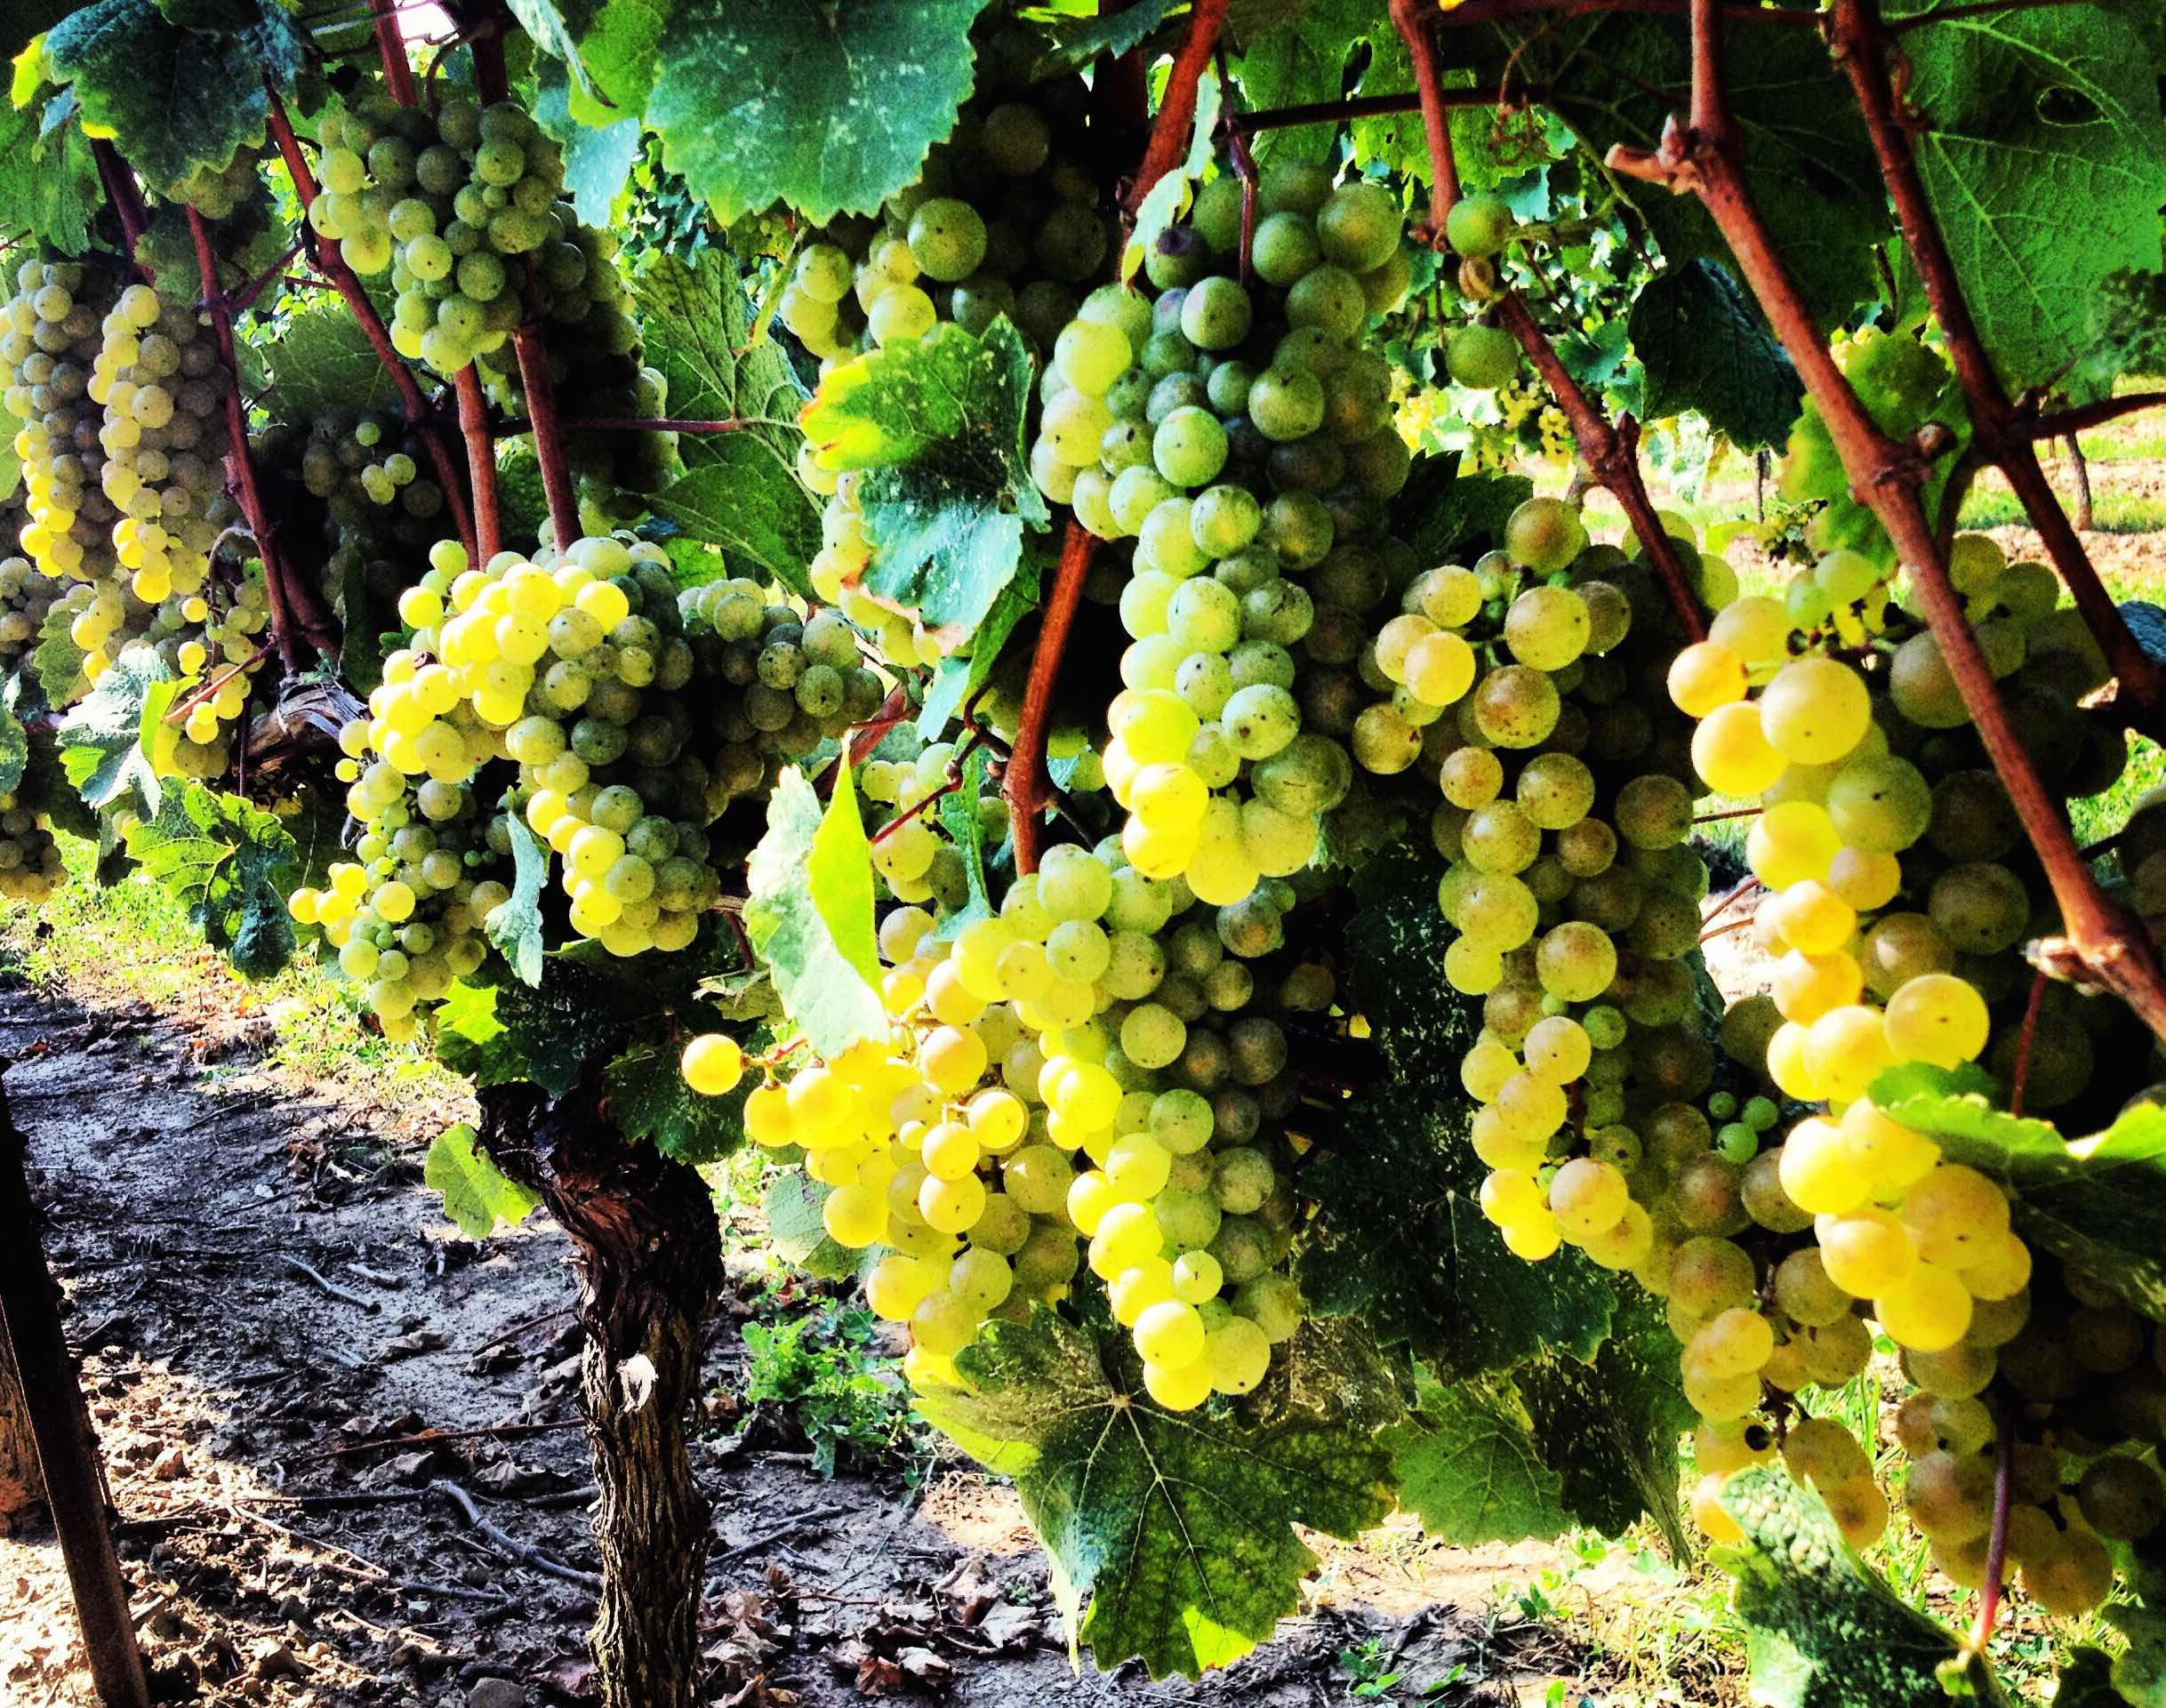 Your Guide to Enjoying Napa & Sonoma's Best Vineyards